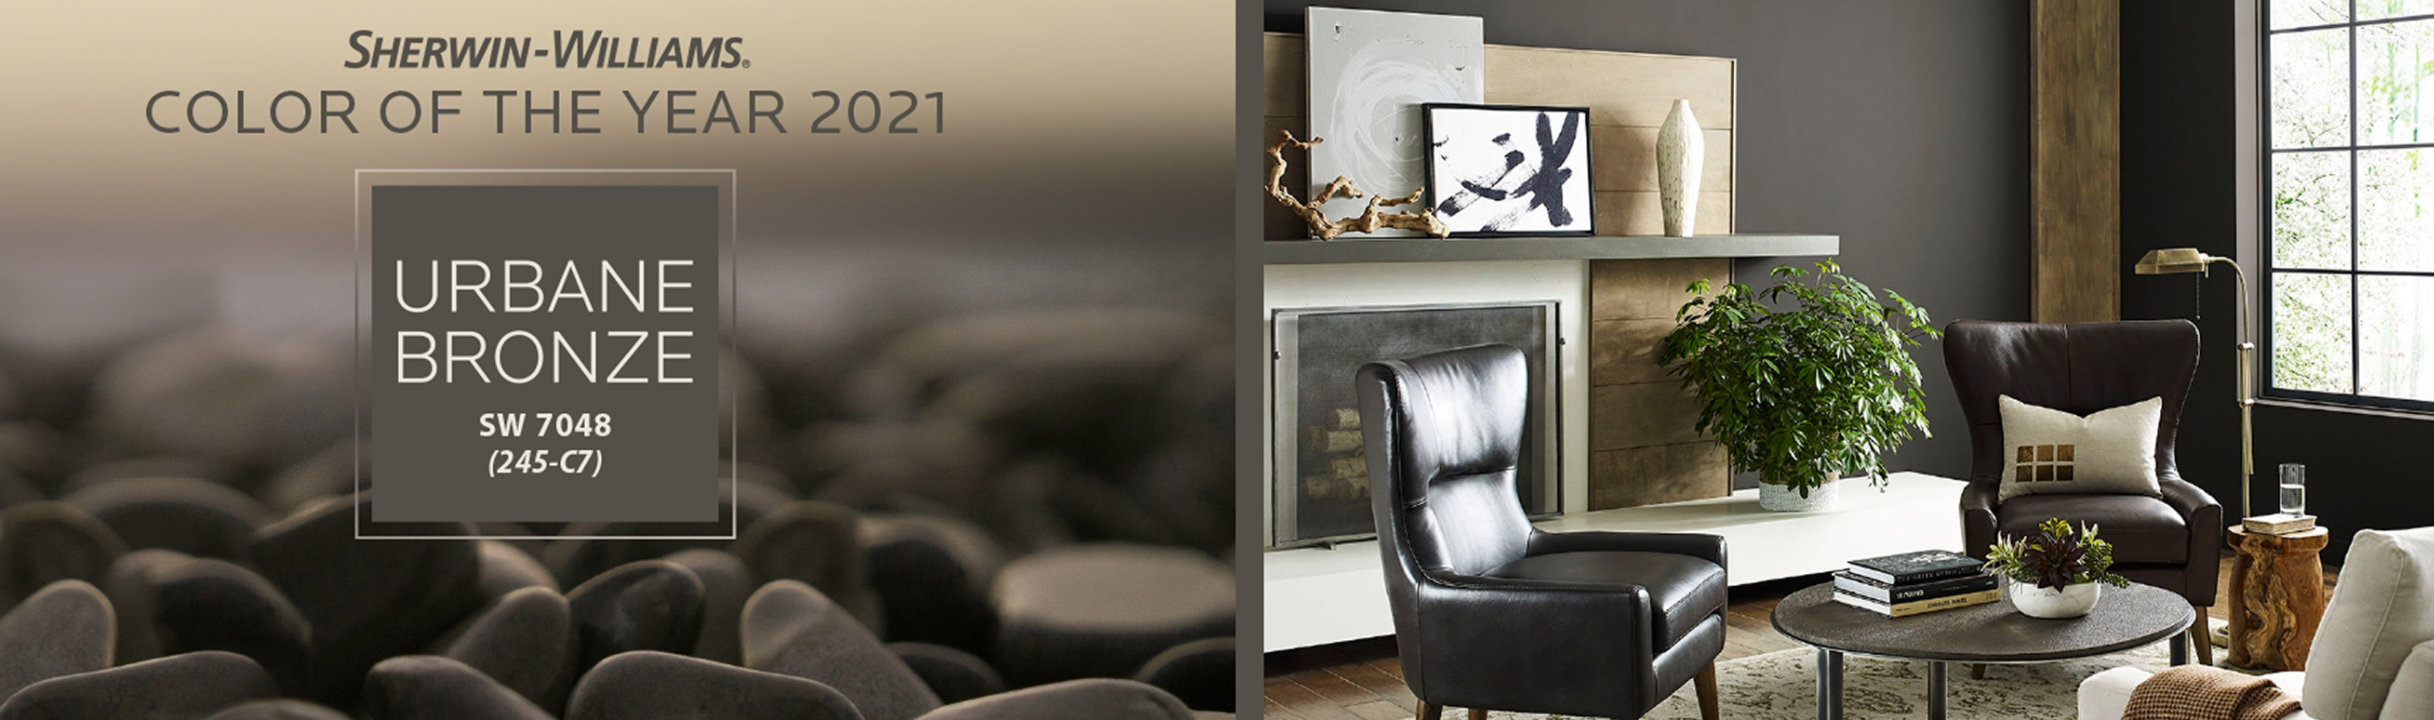 Color of the year image Urbane Bronze